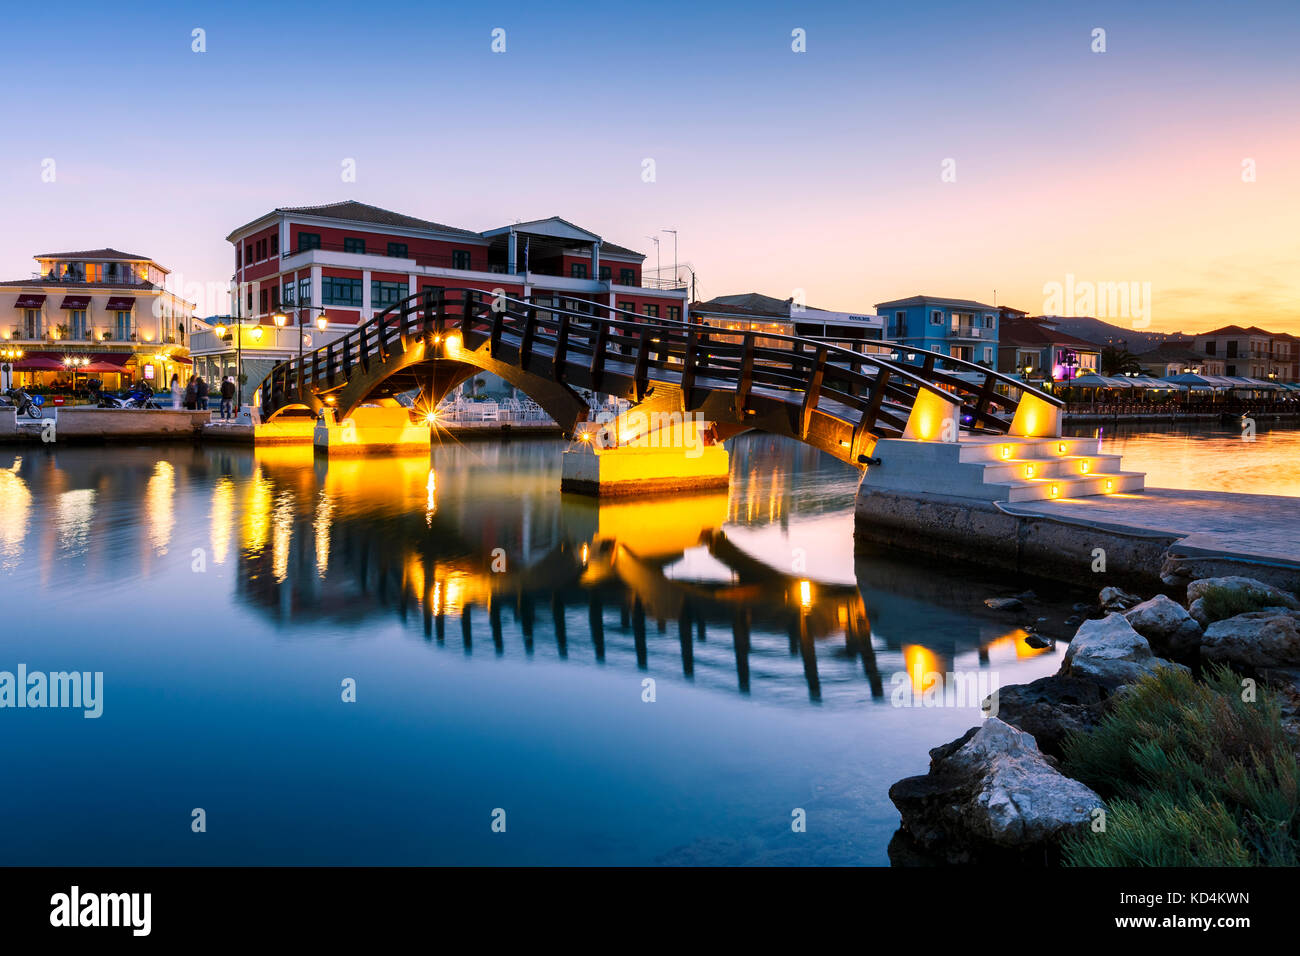 Foot bridge in the harbour of Lefkada town, Greece. - Stock Image